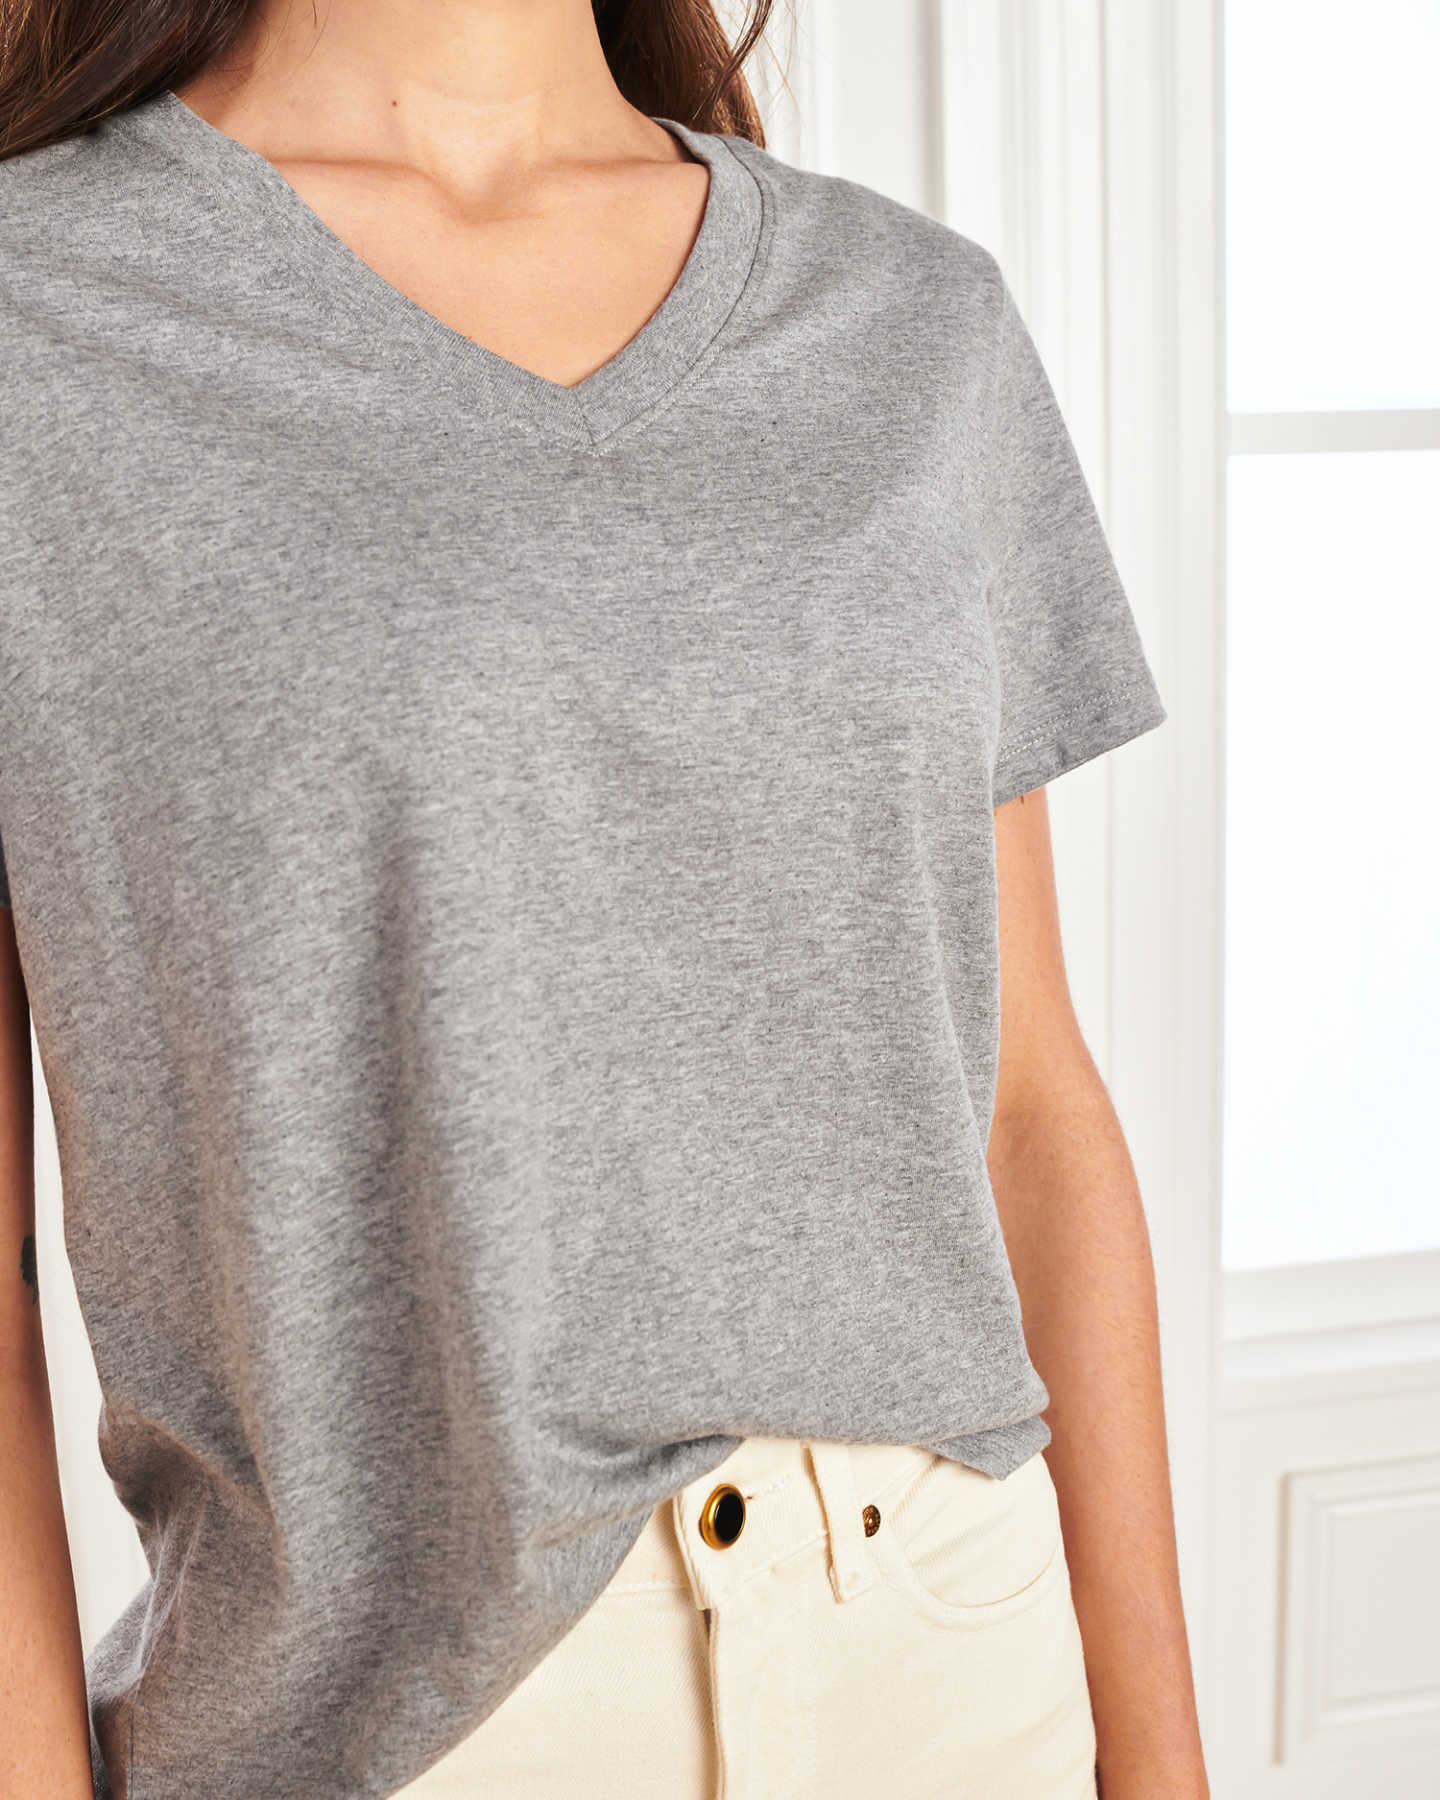 Vintage Wash V Neck Tee - Heather Grey - 5